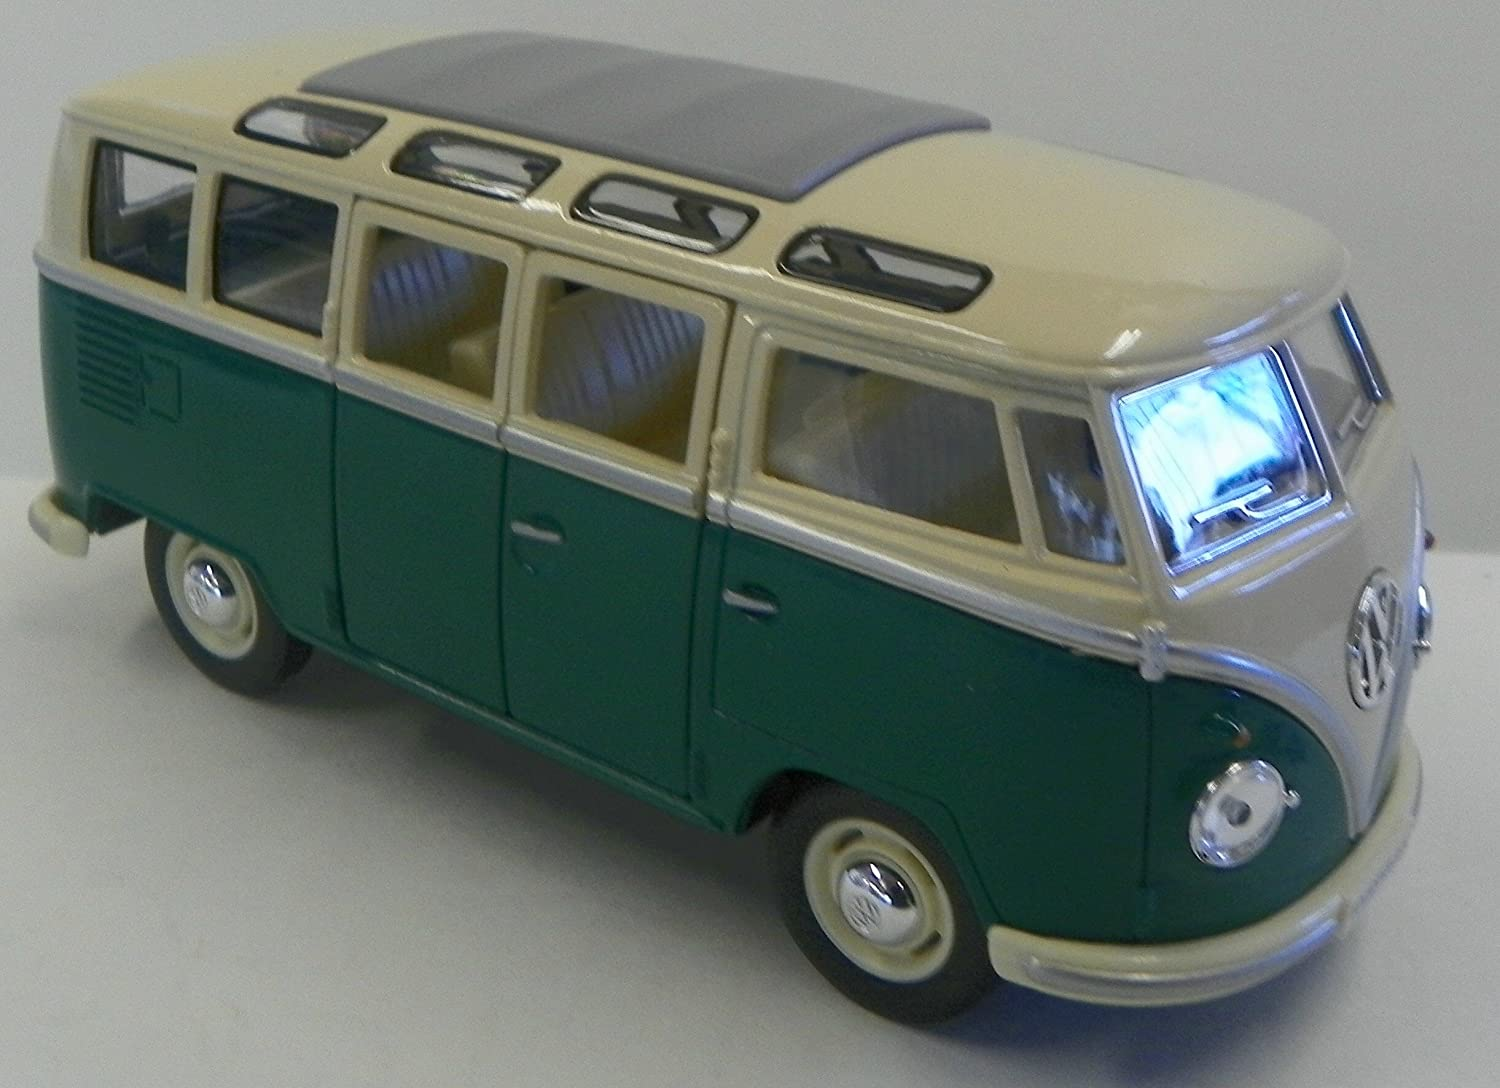 Kinsmart 1 24 Scale Diecast 1962 Volkswagen Classical Bus in Color Green with White Top